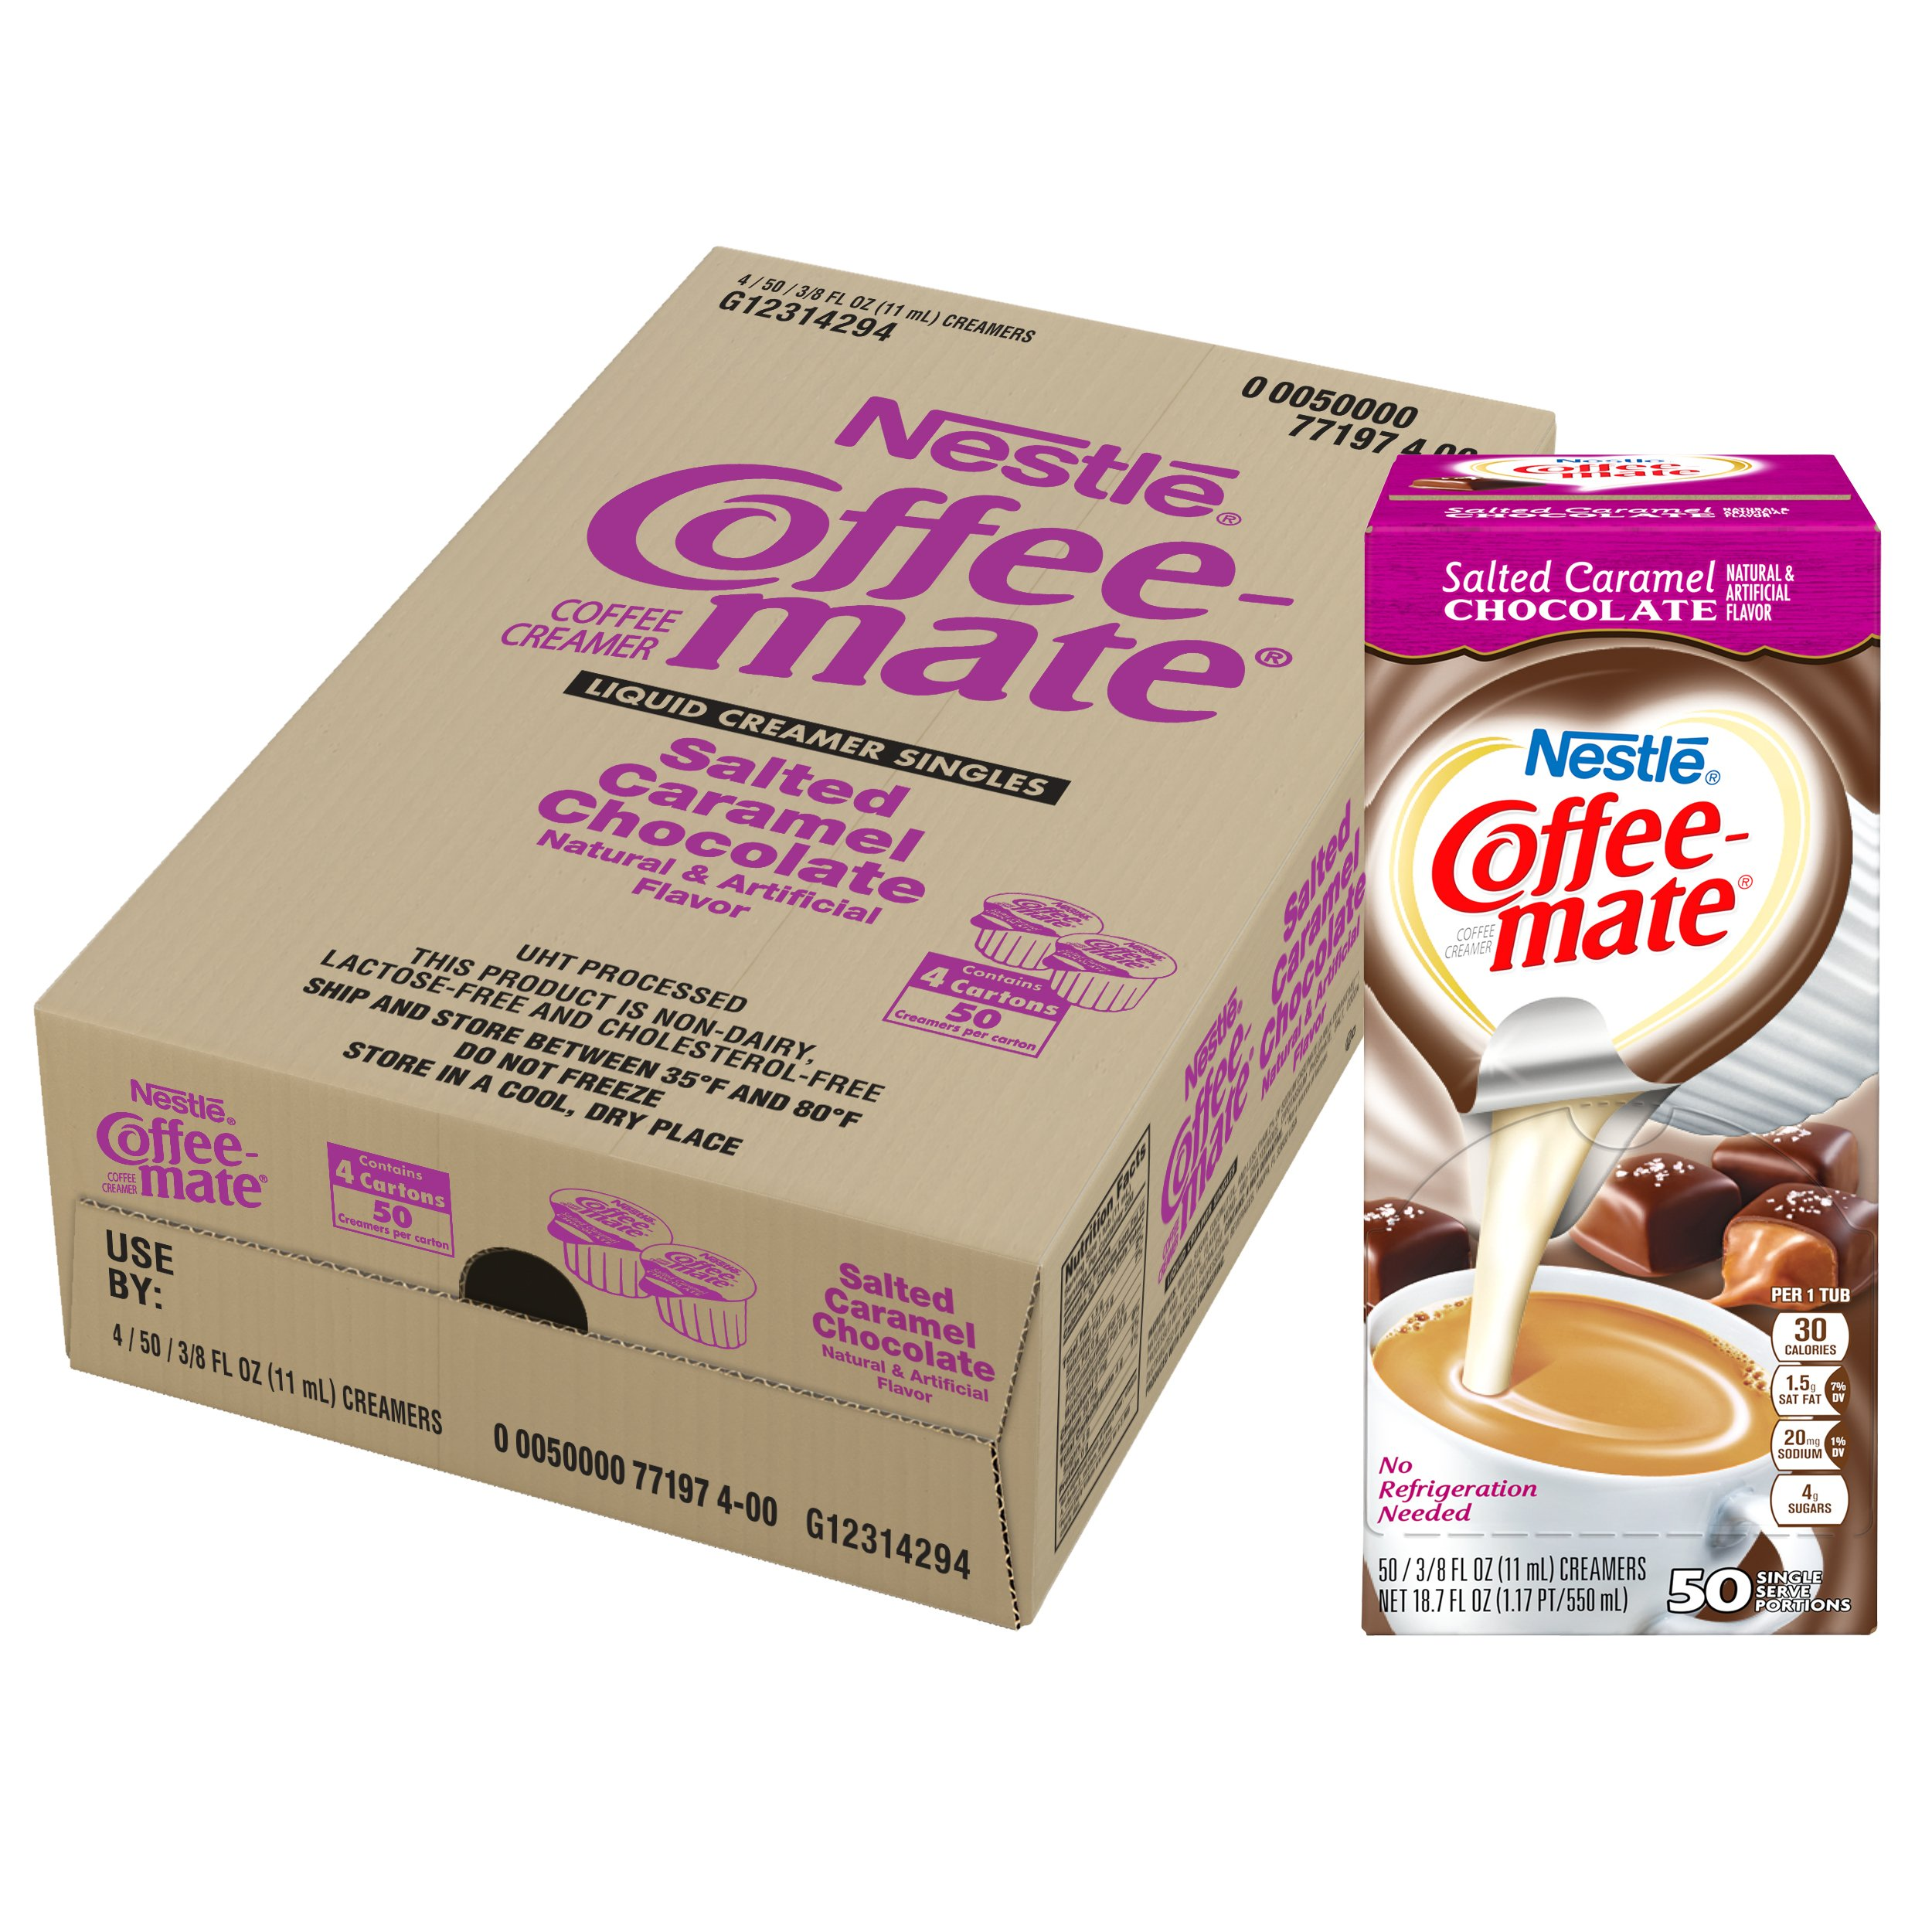 NESTLE COFFEE-MATE Coffee Creamer, Salted Caramel Chocolate, liquid creamer singles, 50 Count, Pack of 4 by Nestle Coffee Mate (Image #6)